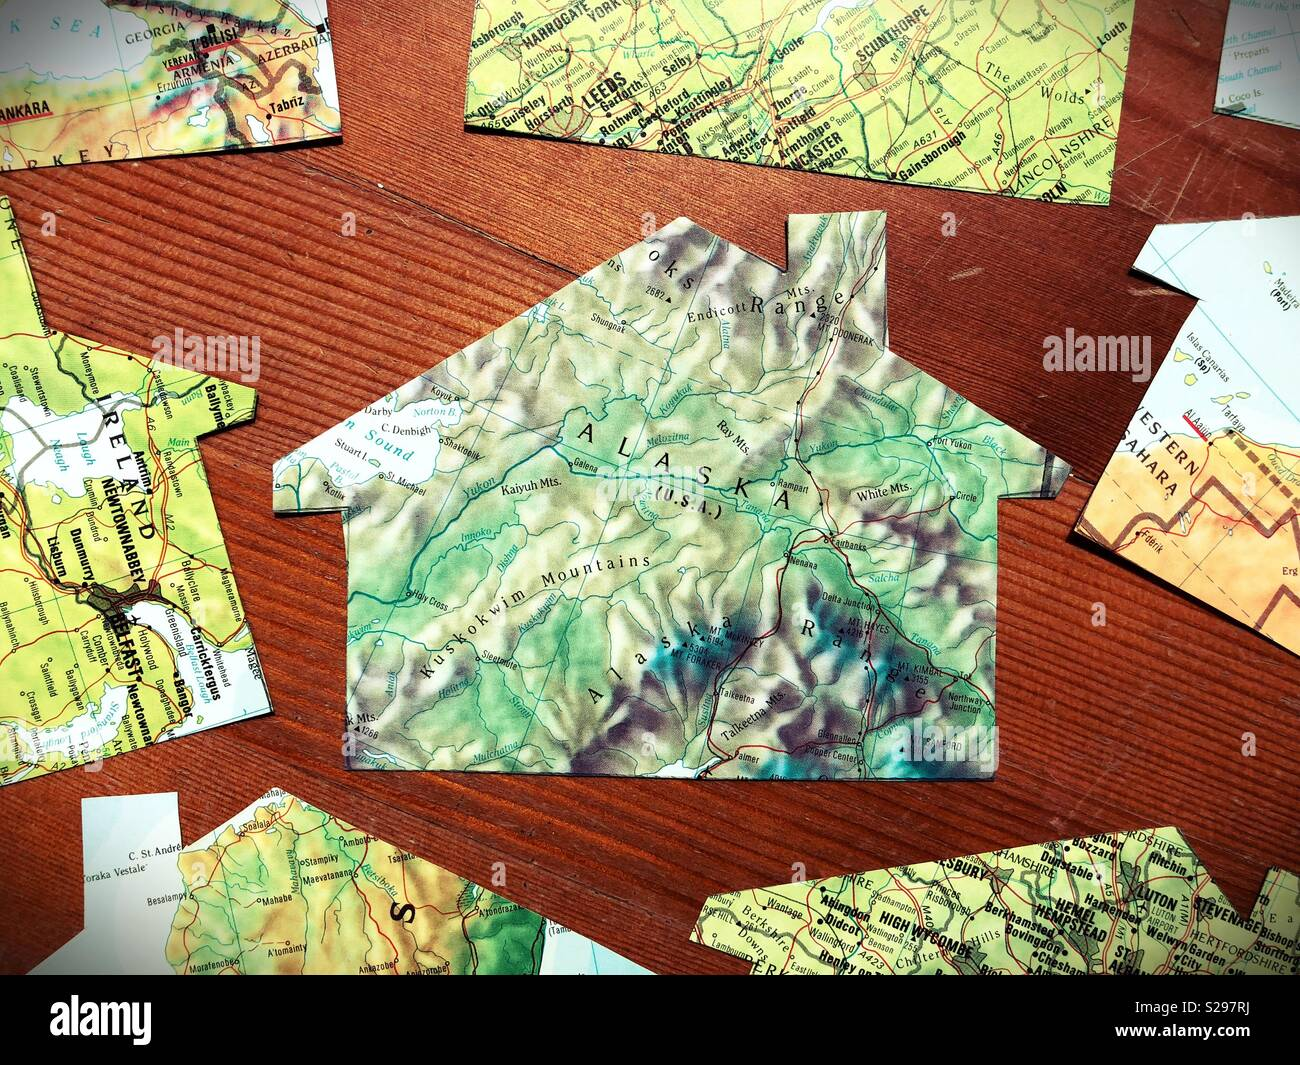 A cut paper house made from a map of Alaska. - Stock Image